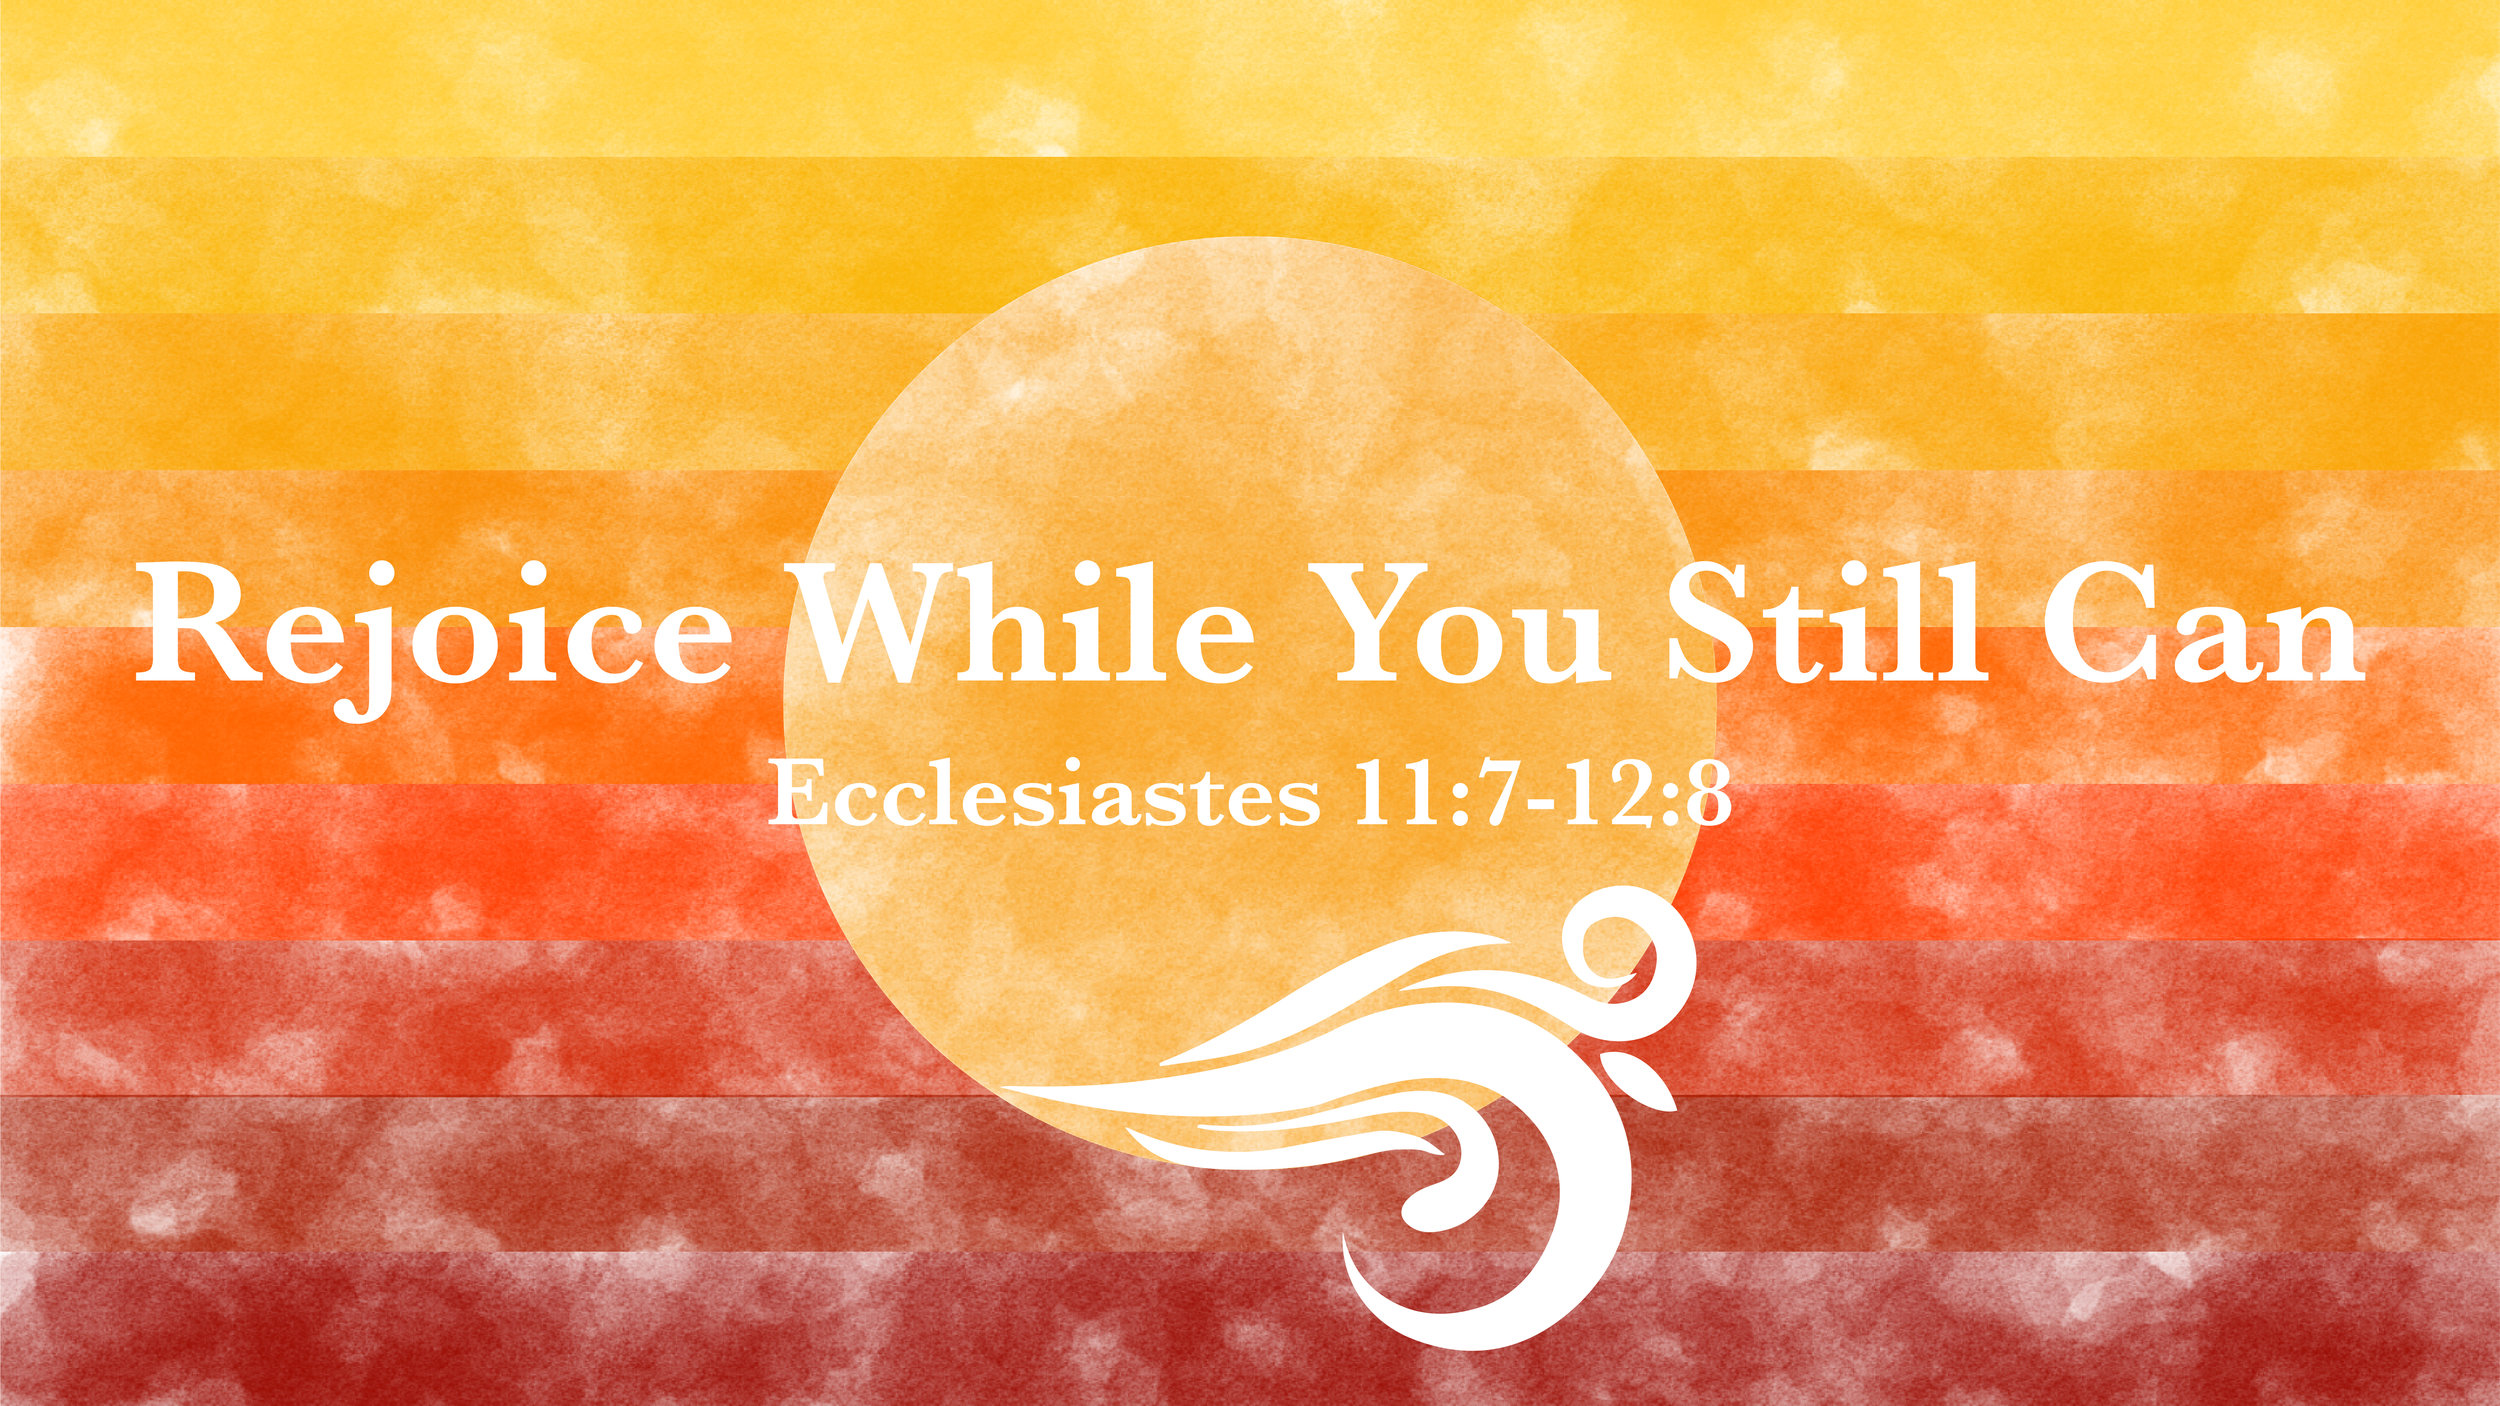 Rejoice While You Still Can-06.jpg